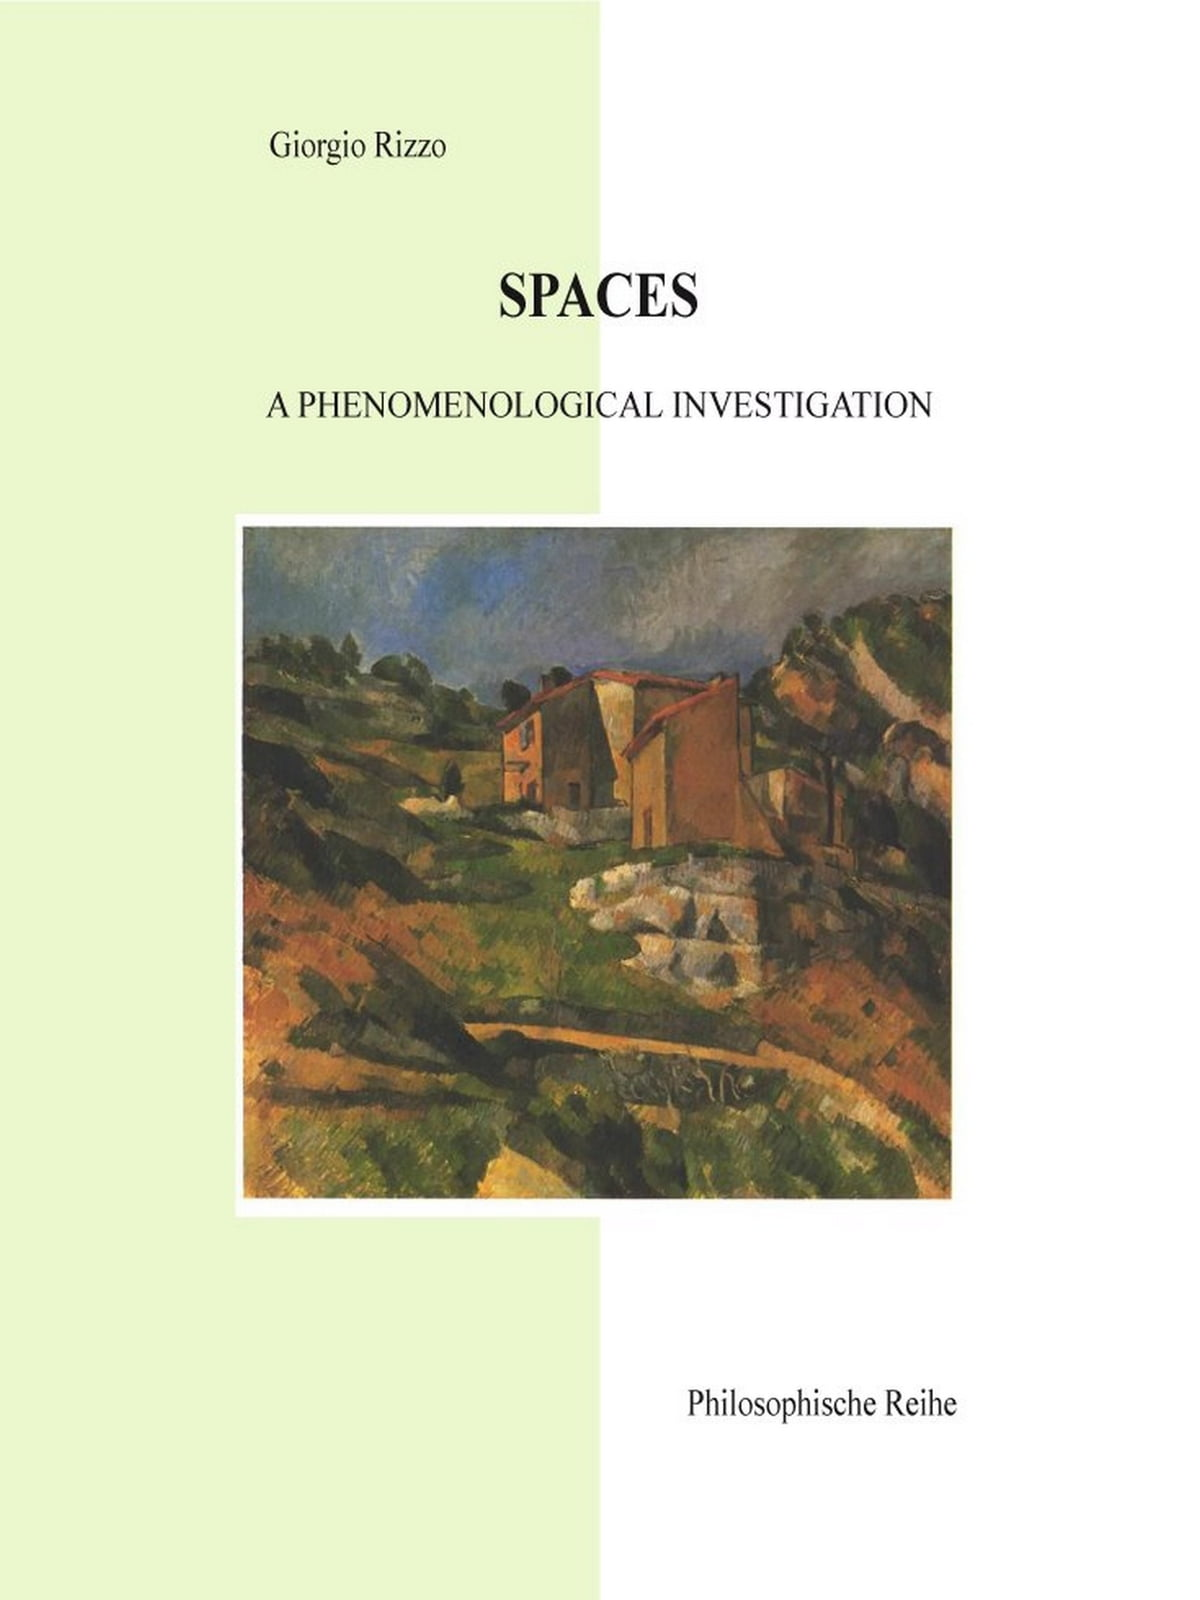 Spaces a phenomenological investigation ebook by giorgio rizzo spaces a phenomenological investigation ebook by giorgio rizzo 9781847900524 rakuten kobo fandeluxe Gallery